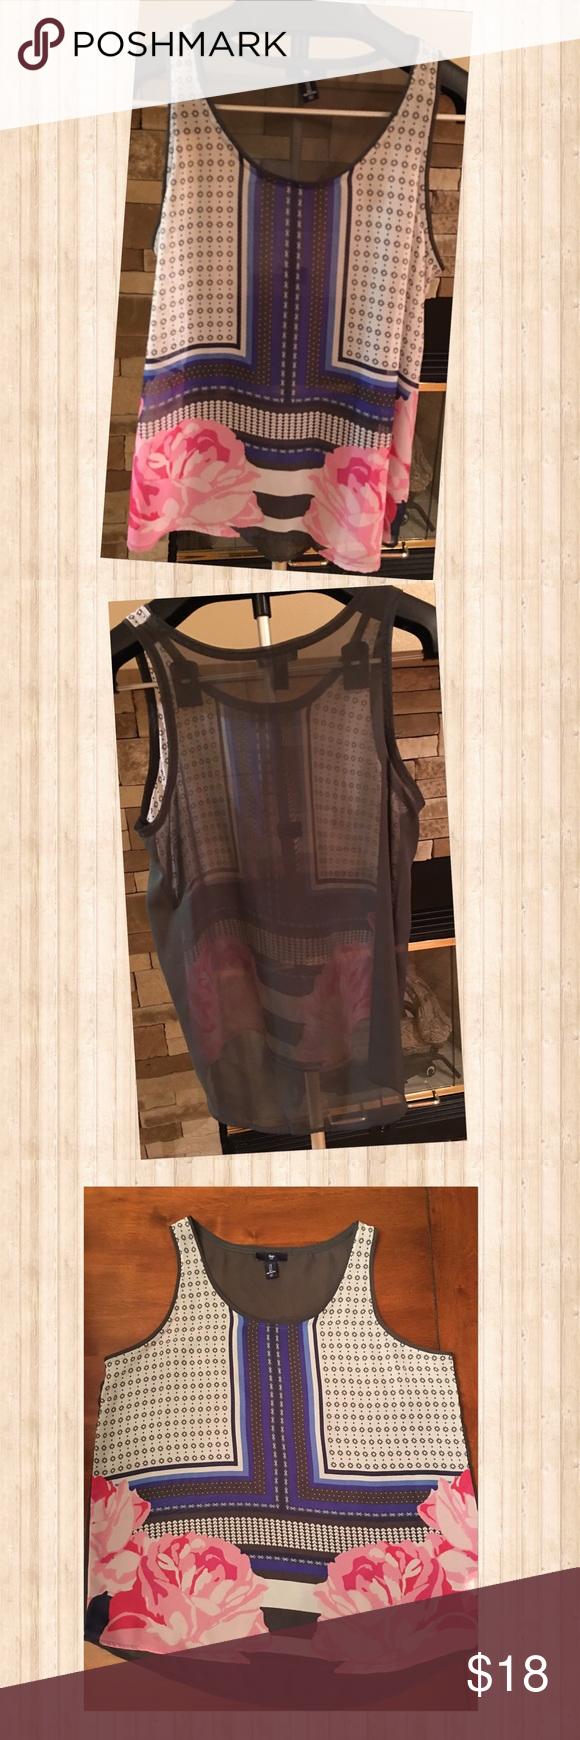 Floral Sheer Gap Tank Beautiful floral print sheer Gap tank.  Has gorgeous neutral colors with a pop of pink.  Light and airy, would be gorgeous under a cardigan for a great fall look! GAP Tops Tank Tops